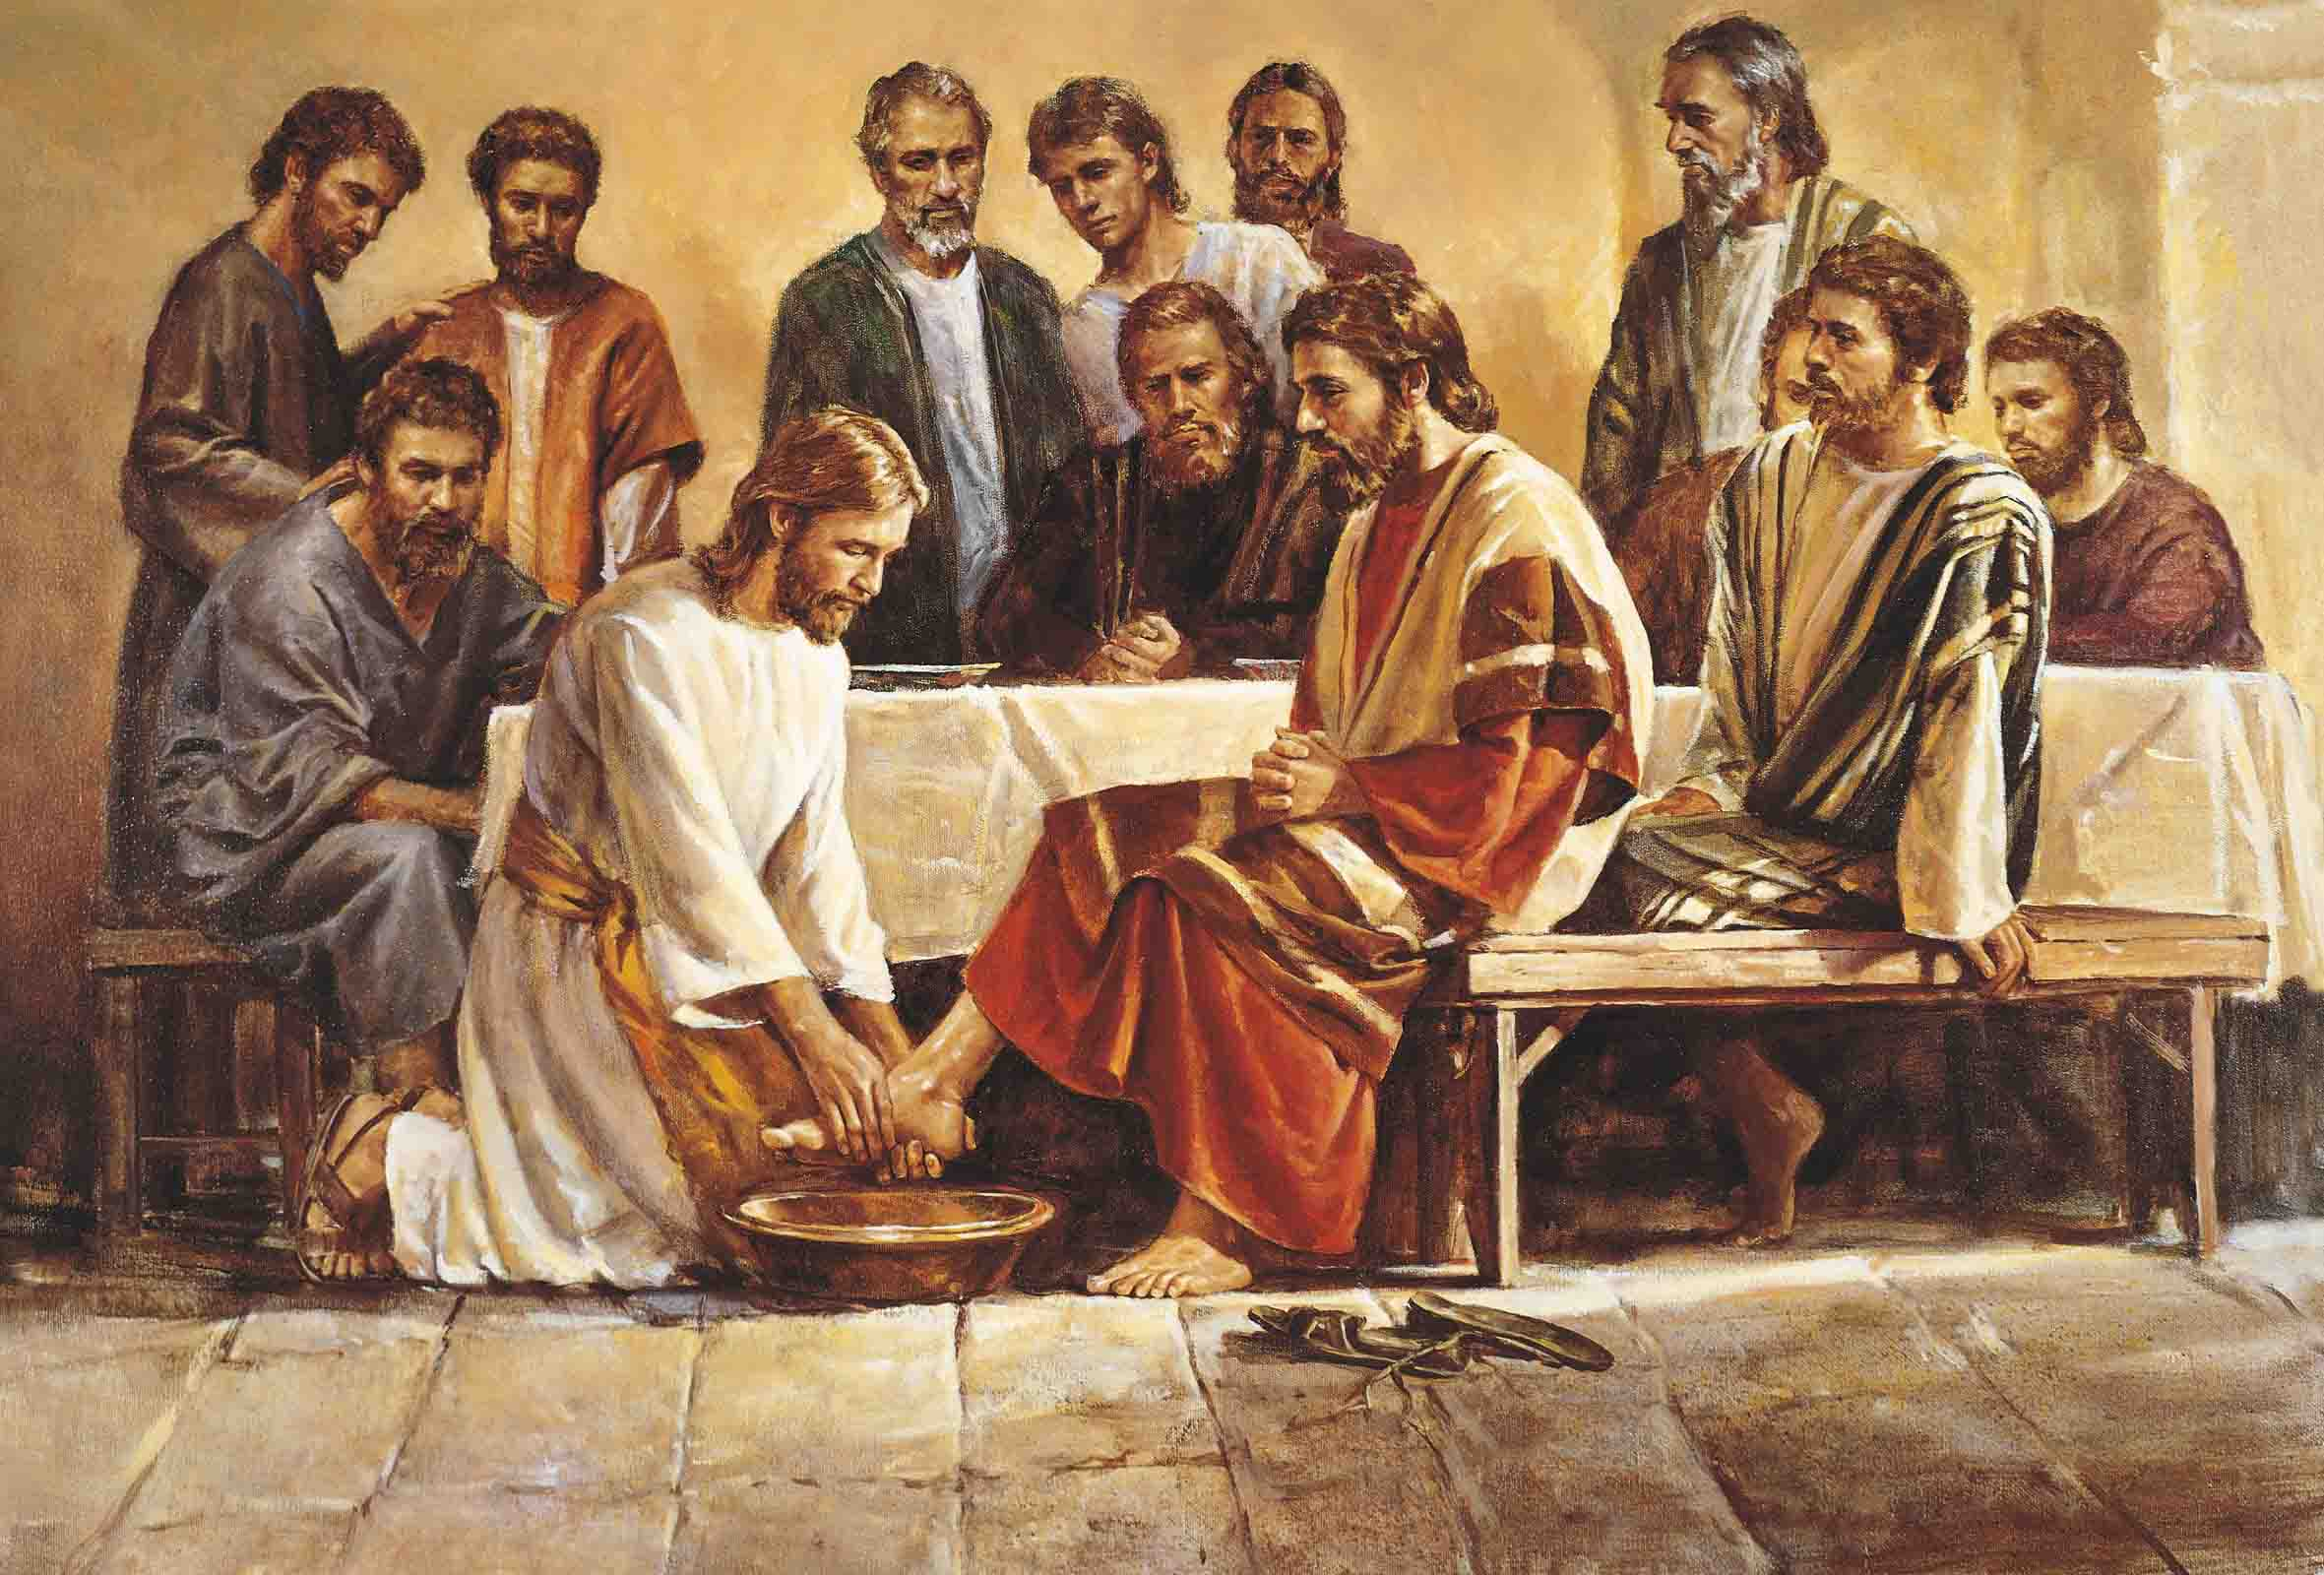 jesus-washing-Twelve-Apostles